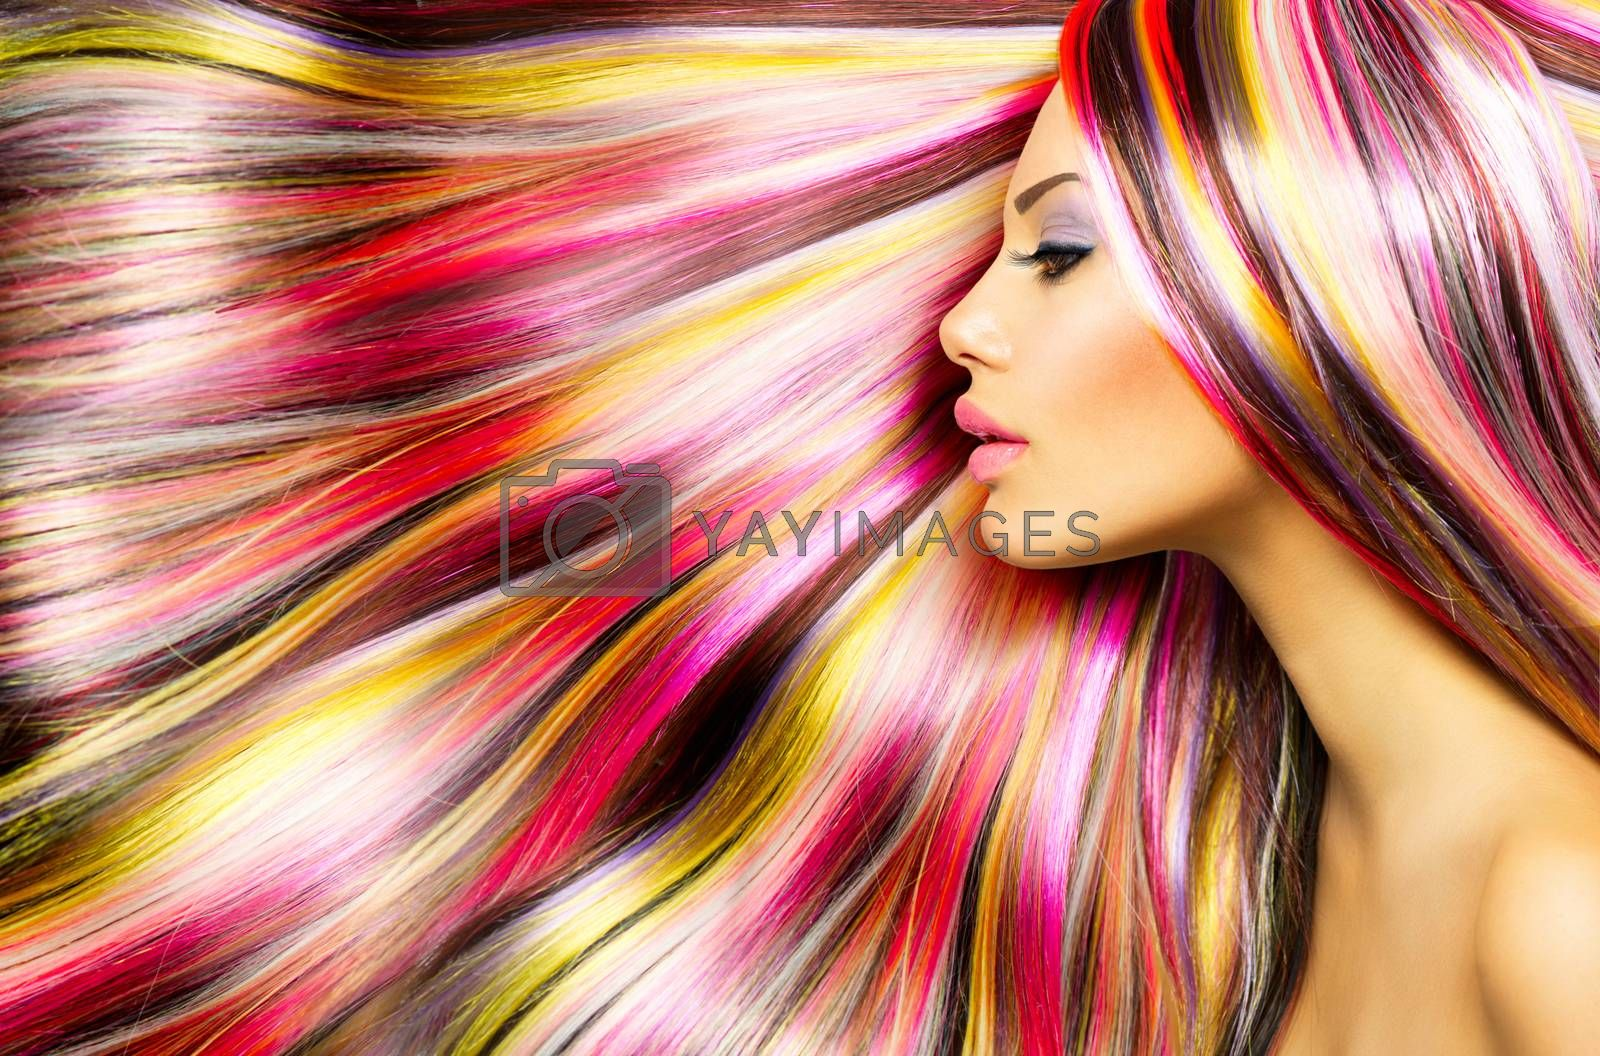 Beauty Fashion Model Girl with Colorful Dyed Hair by SubbotinaA